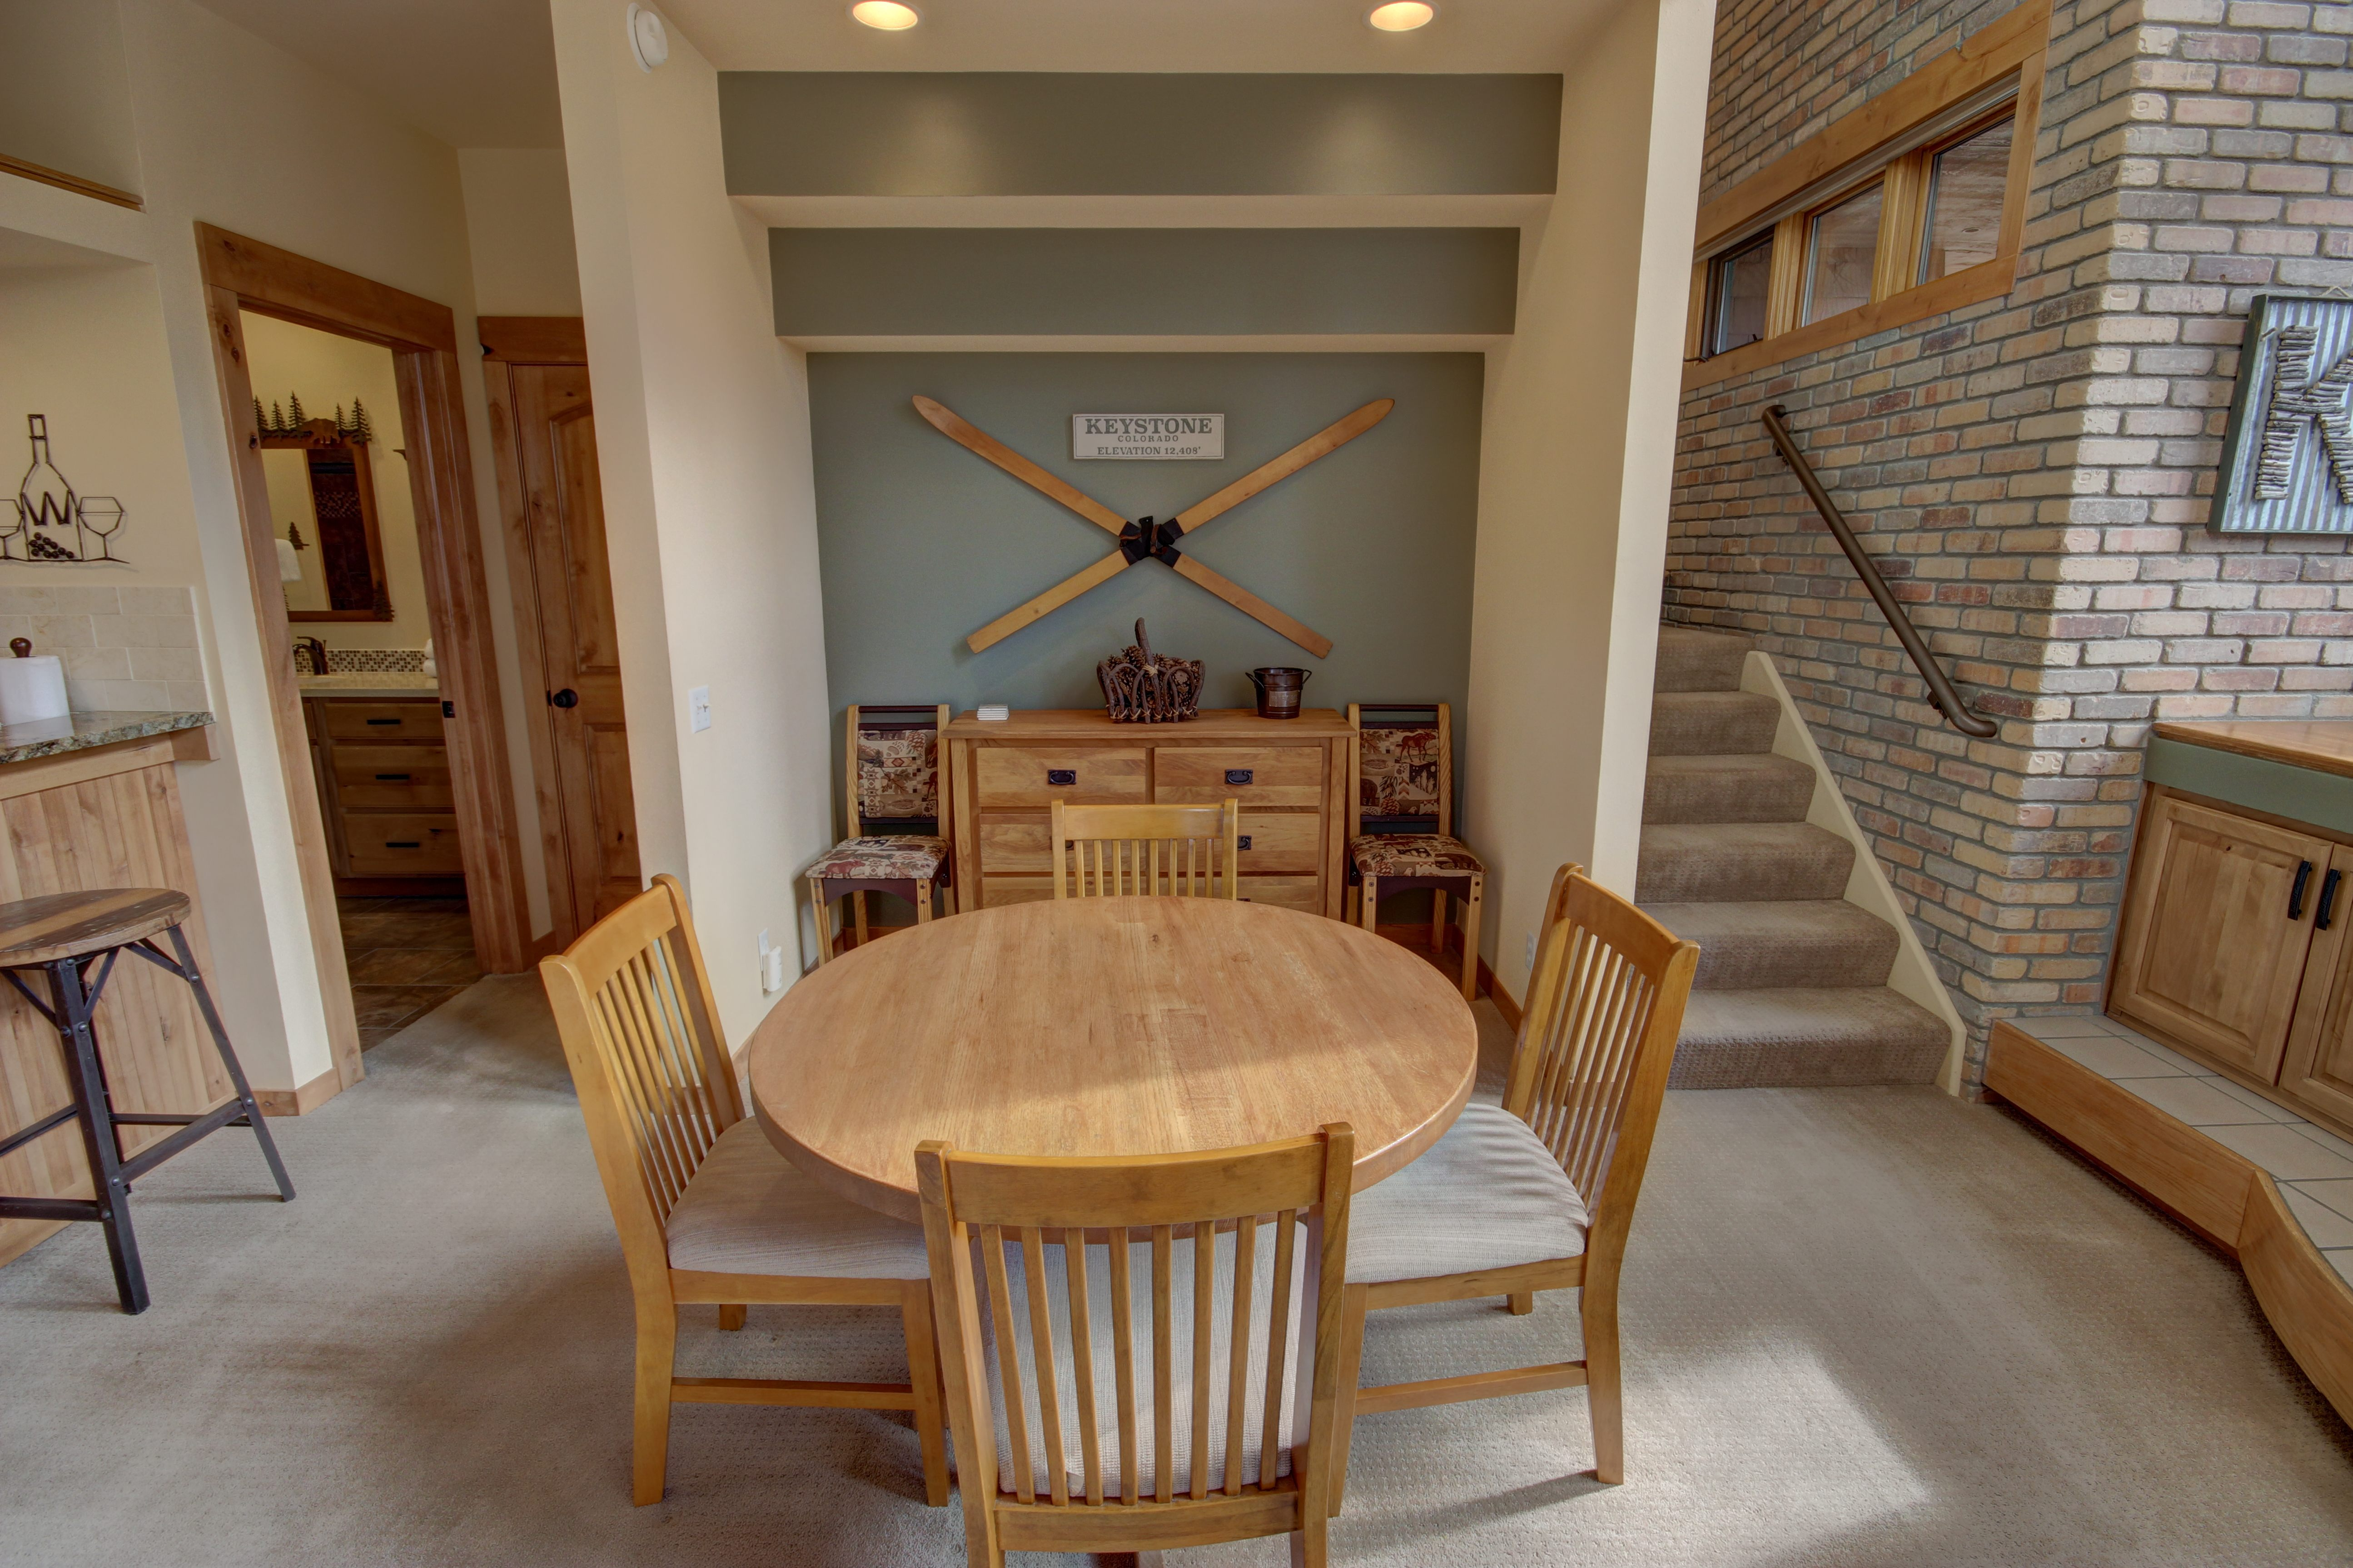 Dining room with beautiful wooden tables